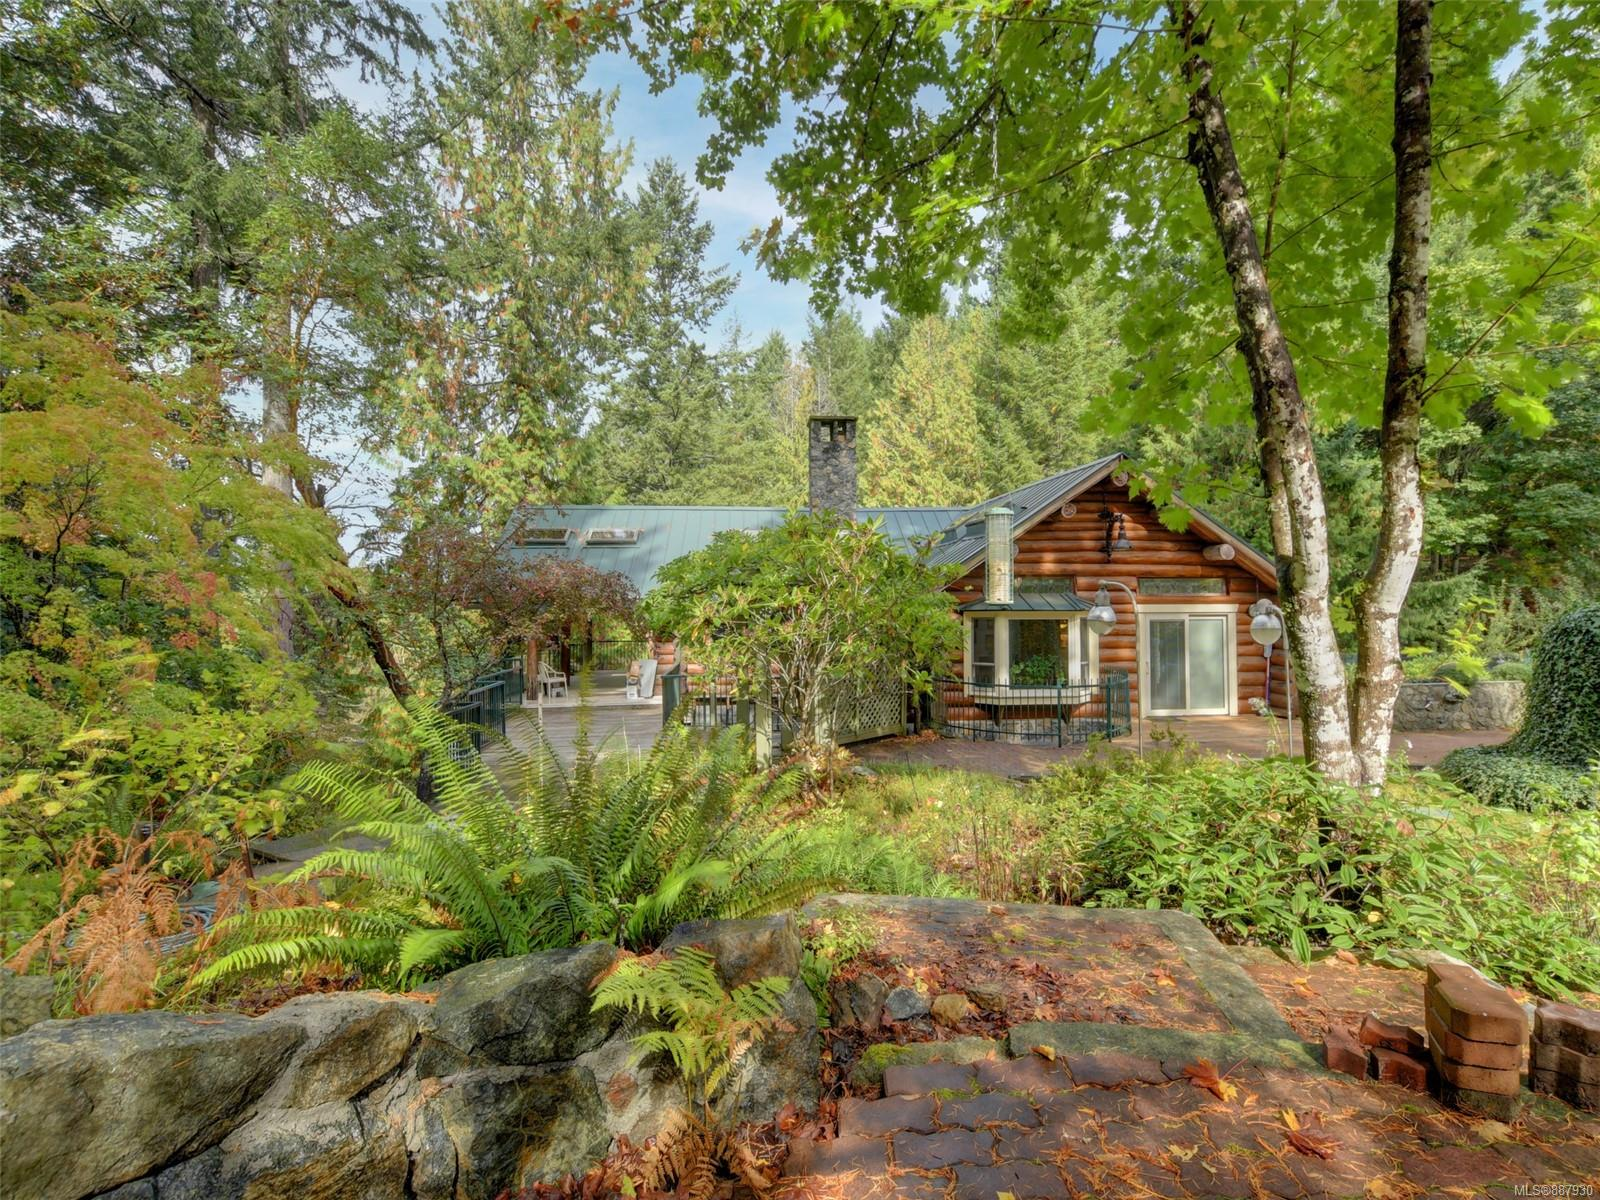 """ONE-OF-A-KIND! Custom Log Home on 54 Acres of Serene Paradise! Surrounded by Regional Parks, Lakes (Pease & Durrance) & Unlimited Walking Trails through Natural Forests outside your door. Exceptional craftsmanship & design offers: Large open concept Living-room, Kitchen & Dining area, 5 Bay windows, 1 Bow window, 20 unique leaded glass windows, solid oak 3/4"""" flooring, easy care tile & bright open areas to enjoy the quiet setting. The wrap around decks & patios with beautiful stonework & walls are an added asset for entertaining & enjoying the outdoors. This amazing property has so much to offer: your own hiking trails, roads to service your property, a seasonal stream that feeds into Pease Lake, nicely producing Artisian well, creek-fed Holding tanks for extra water & irrigation. Fully fenced Apple Orchard & Garden area for growing your own food (potential vineyard). All this & still only 8 min. to the Red Barn for groceries, 20 min. from Sidney, 25 min. to Victoria. *APPOINTMENT ONLY"""